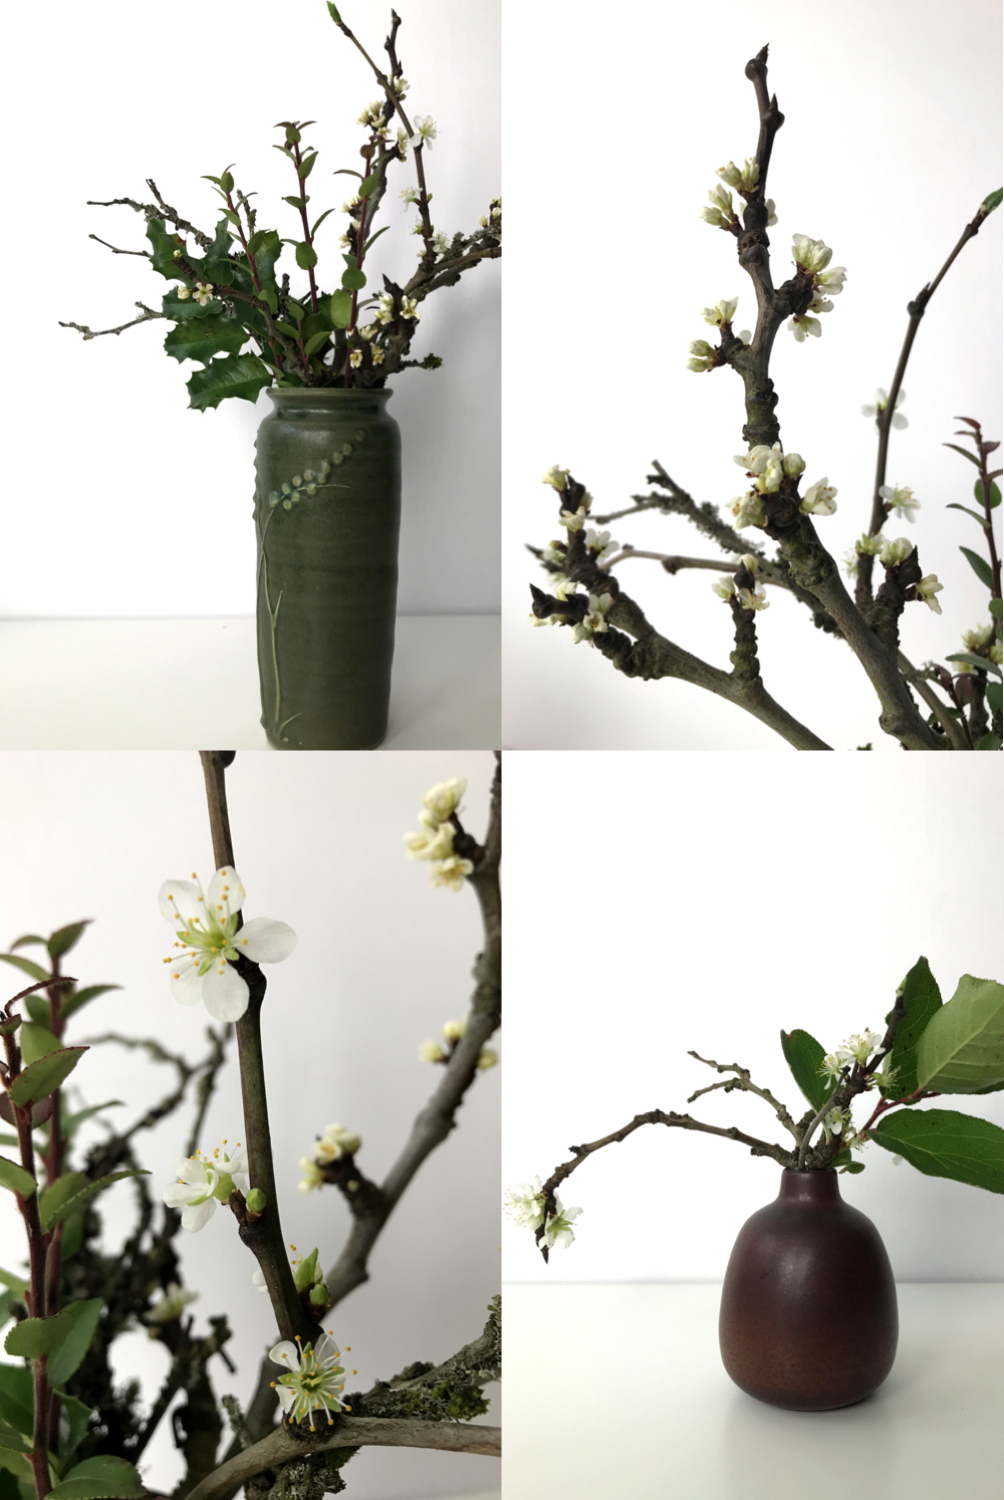 A compilation of four images featuring small winter arrangements of plum branches flowering with mahonia, huckleberry, and salal leaves.